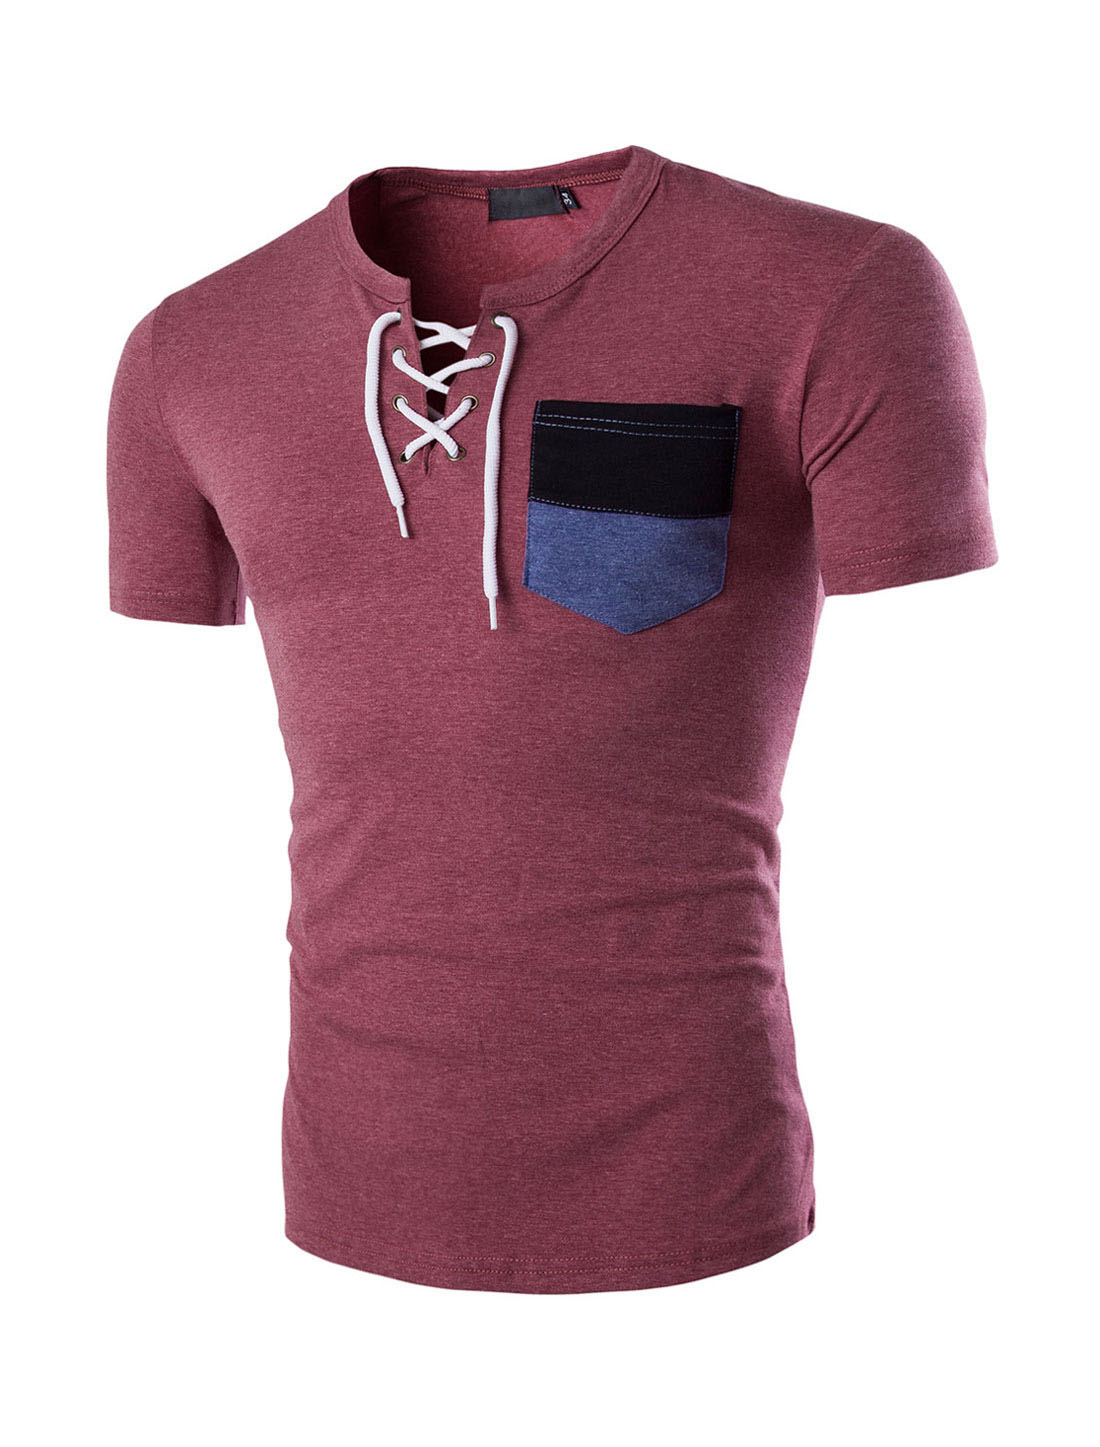 Men Short Sleeves Lace-up Front Tee Shirts Burgundy S